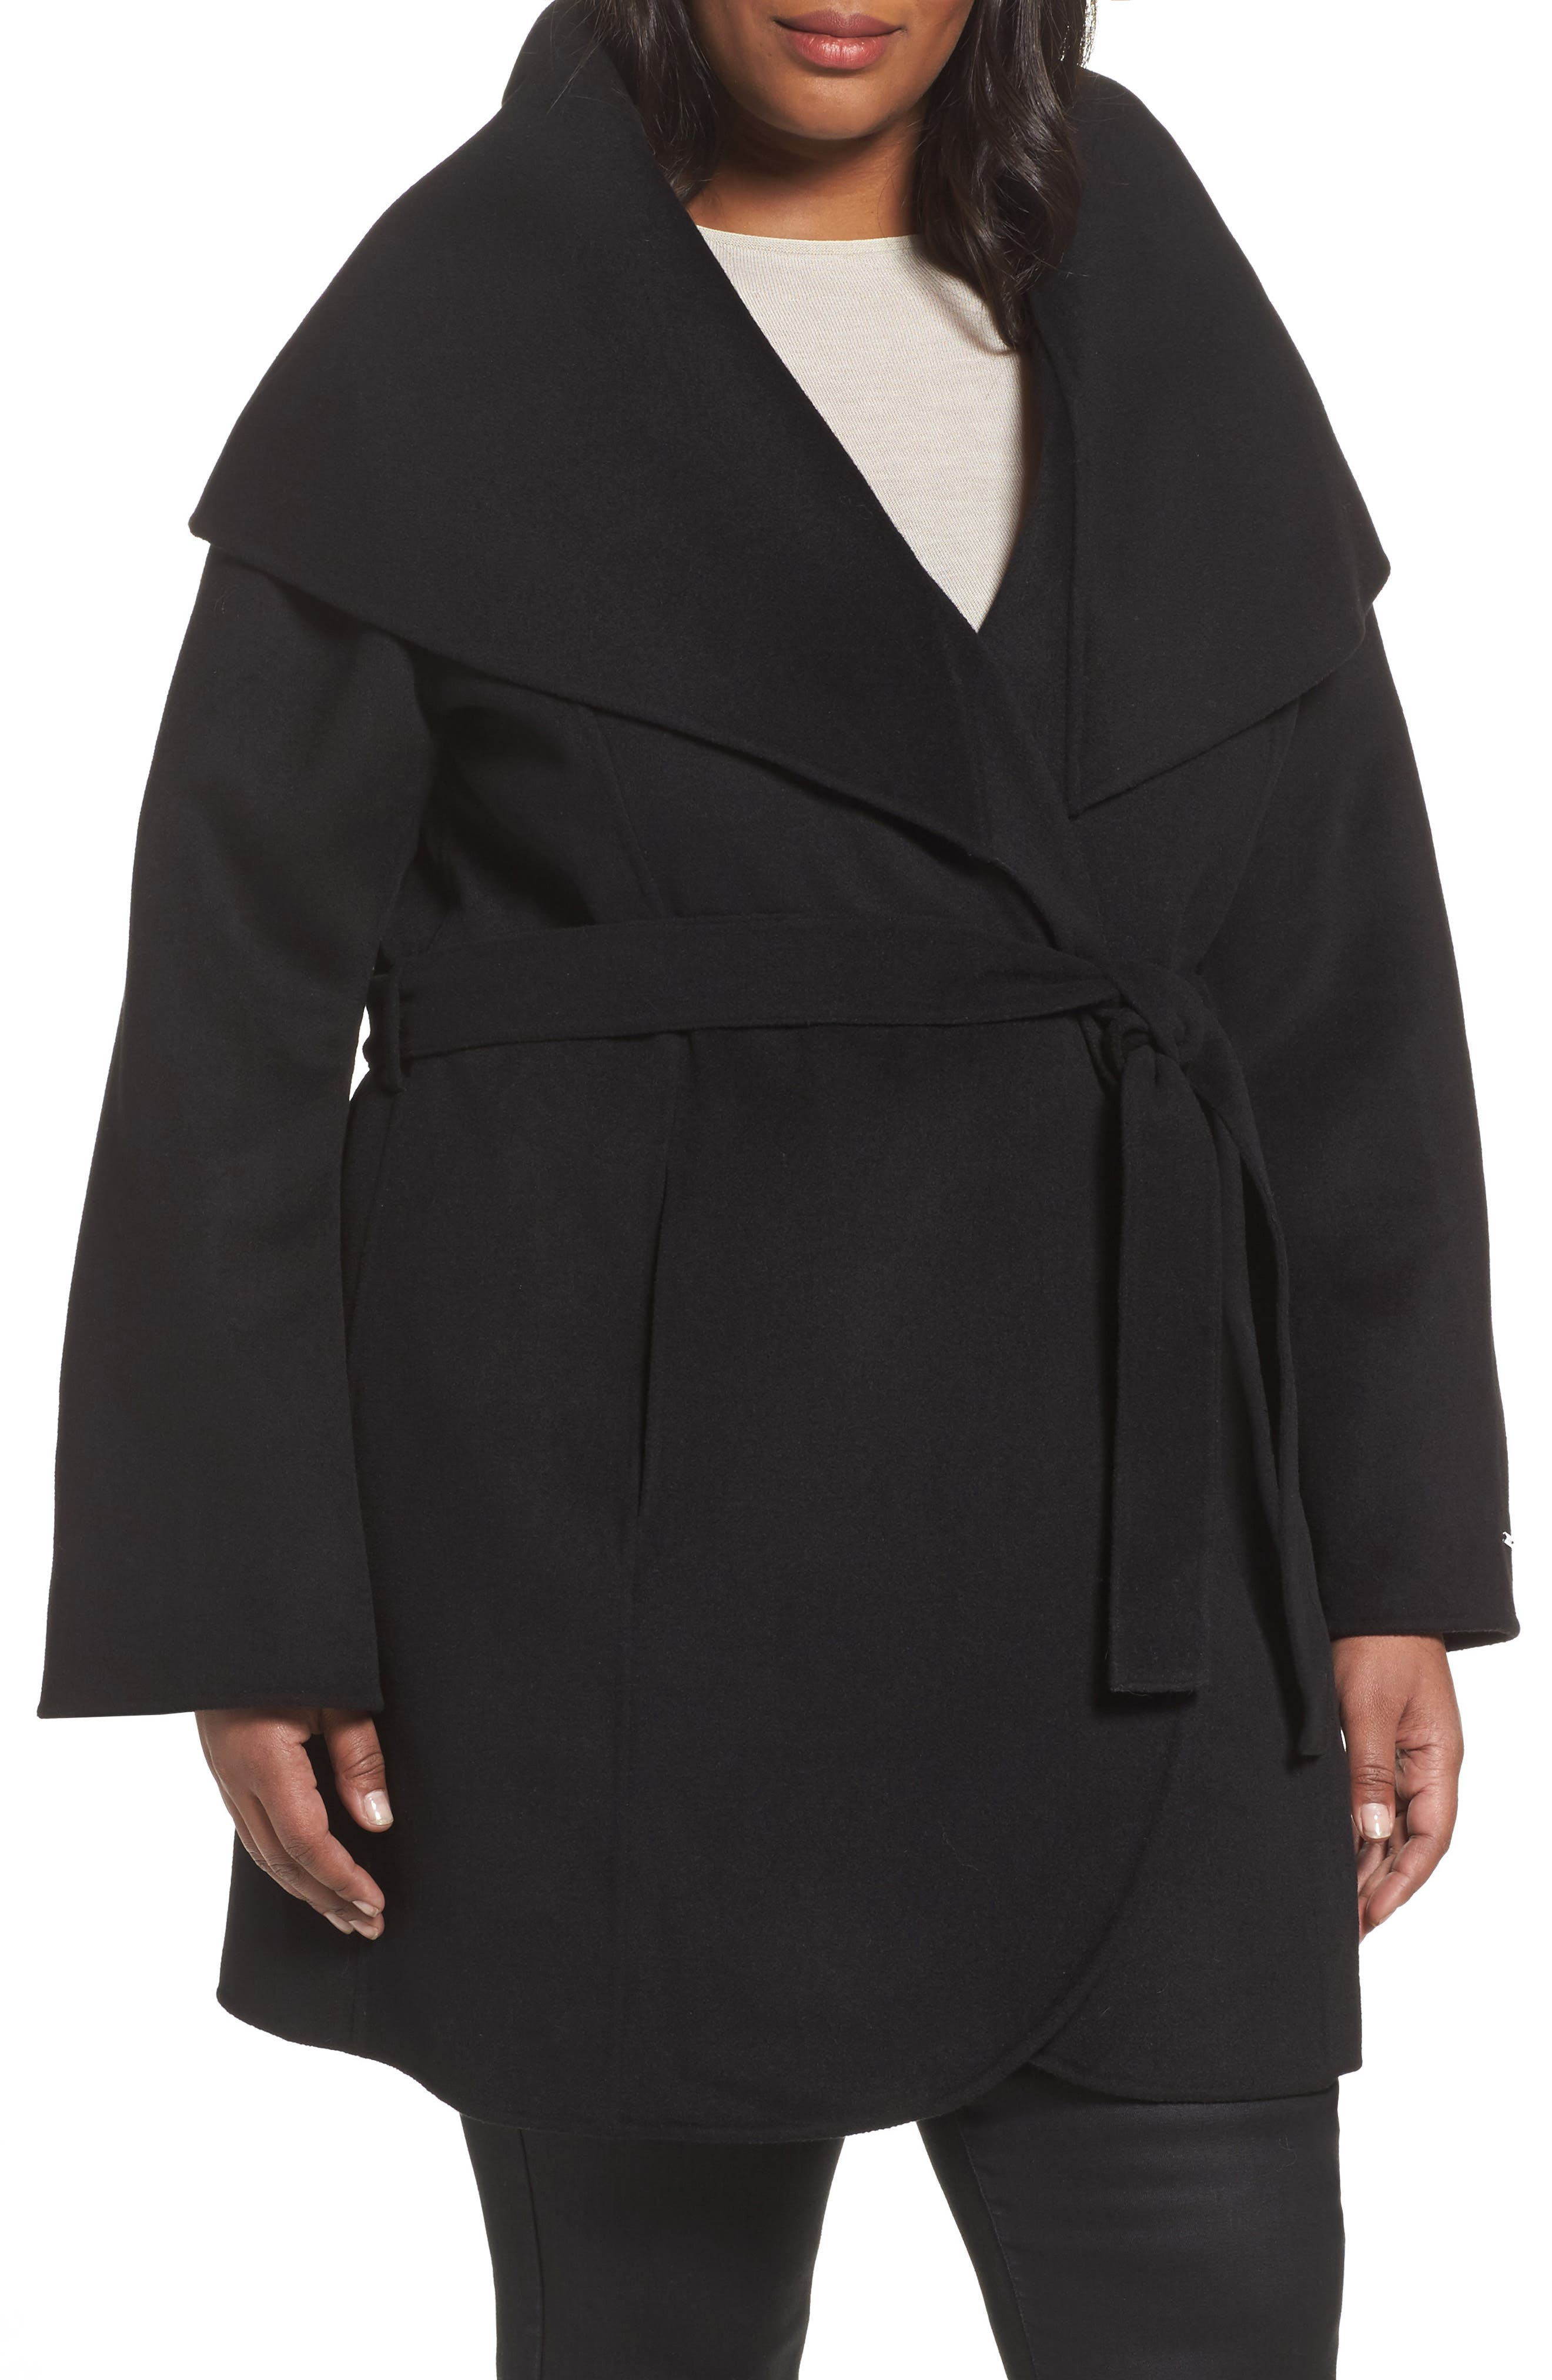 Maria Double Face Wool Blend Wrap Coat,                         Main,                         color, Black